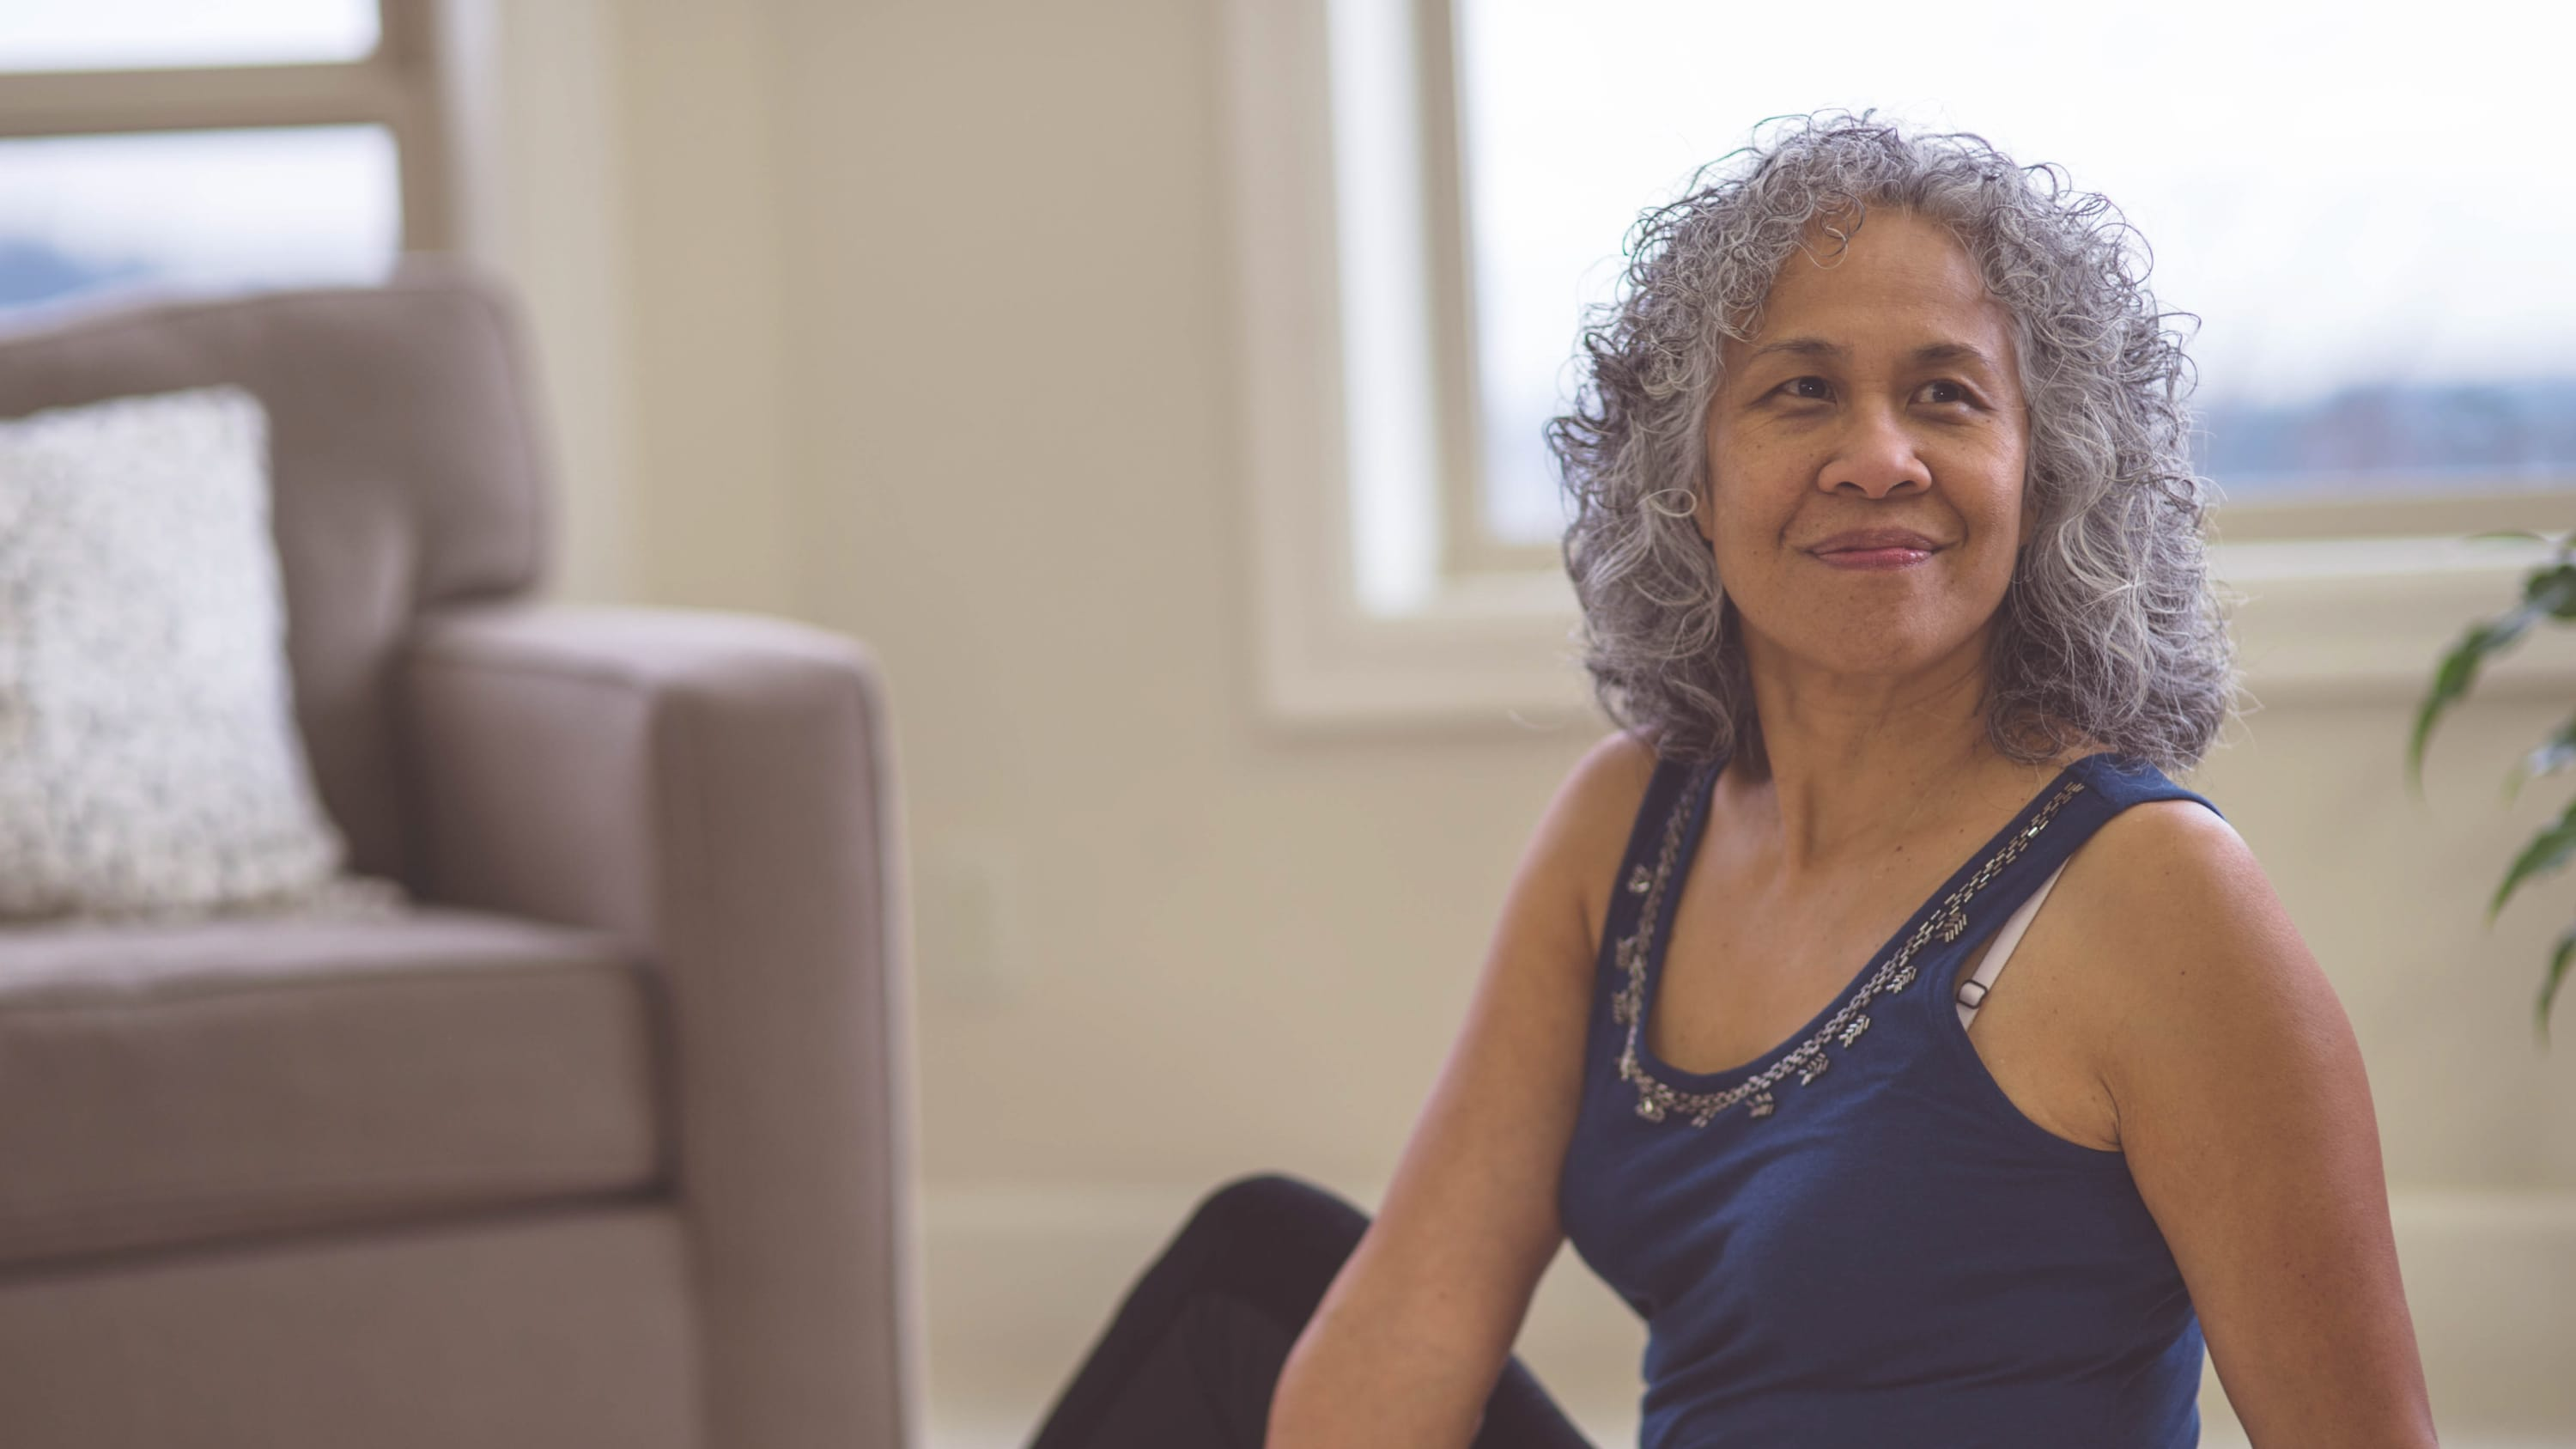 A middle-aged woman who is exercising and could be an ovarian cancer survivor.